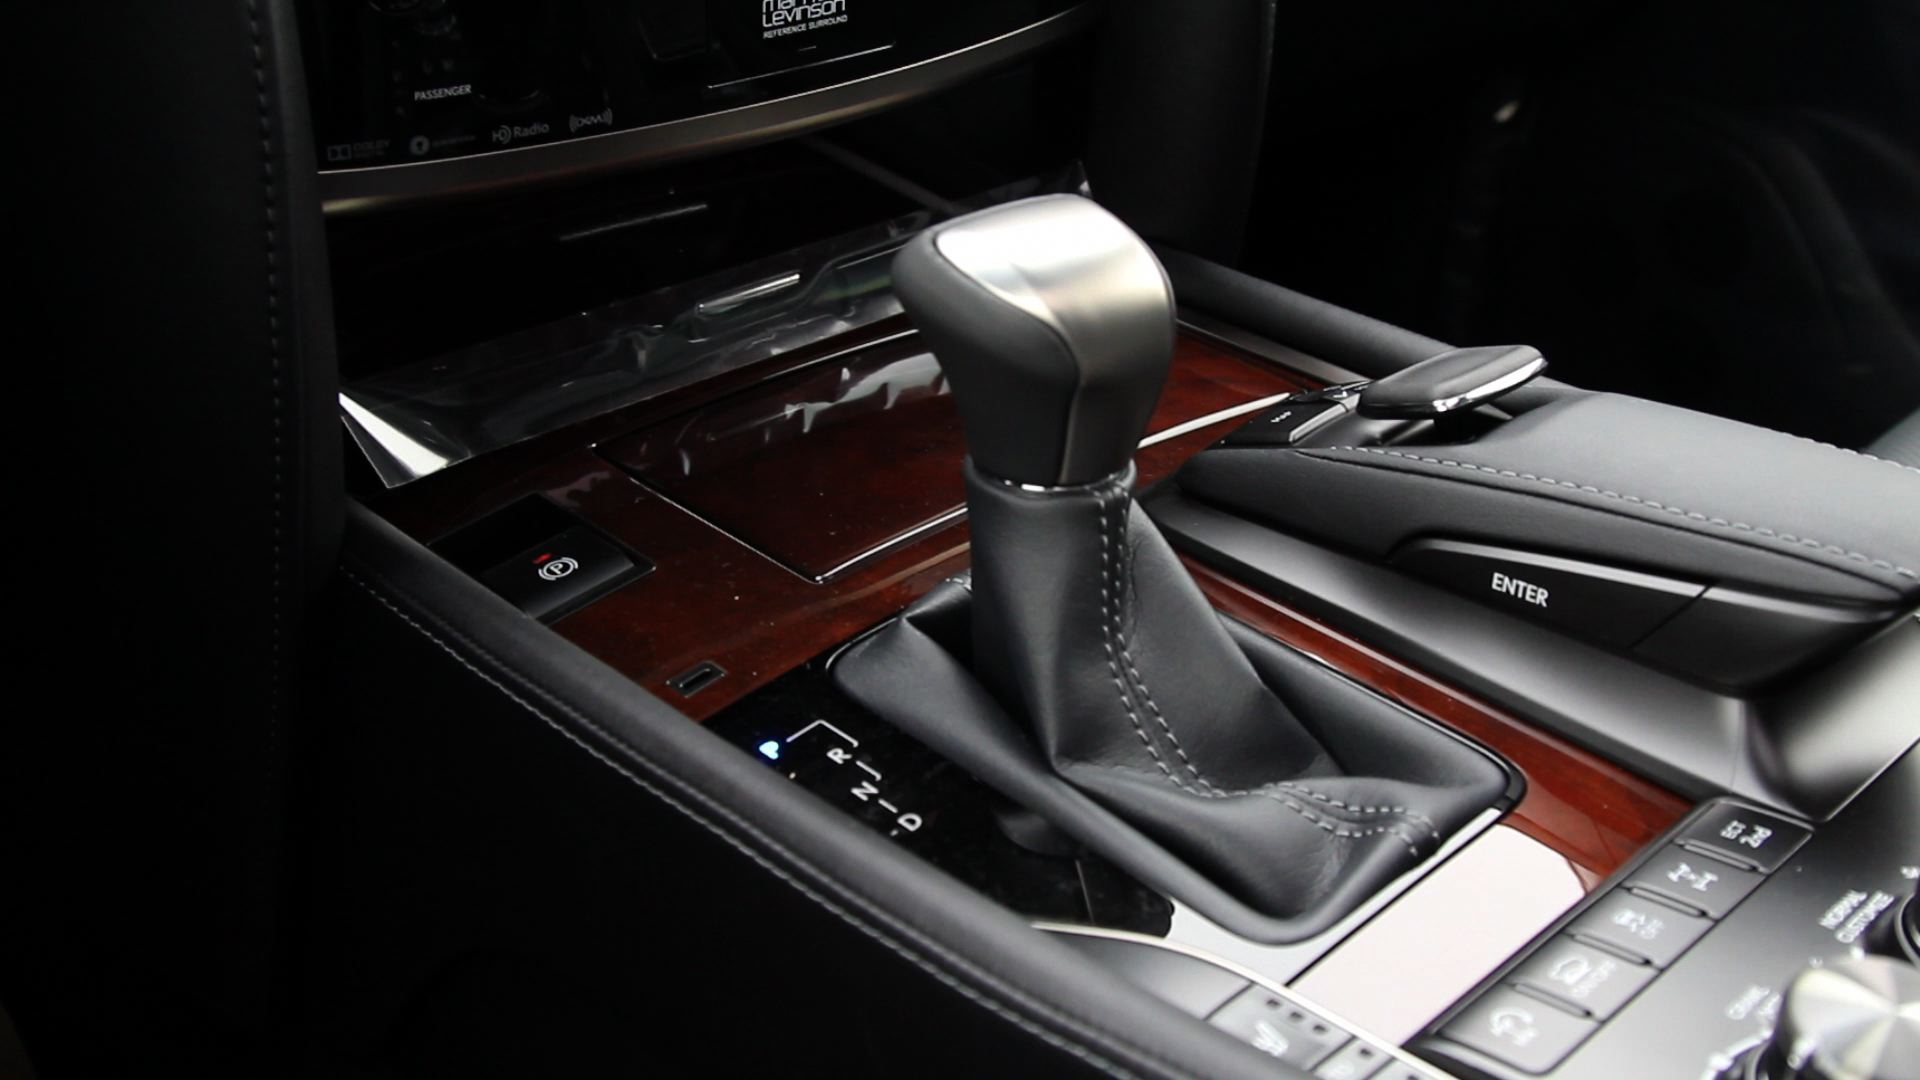 2016 Lexus LX 570 - Gear shift